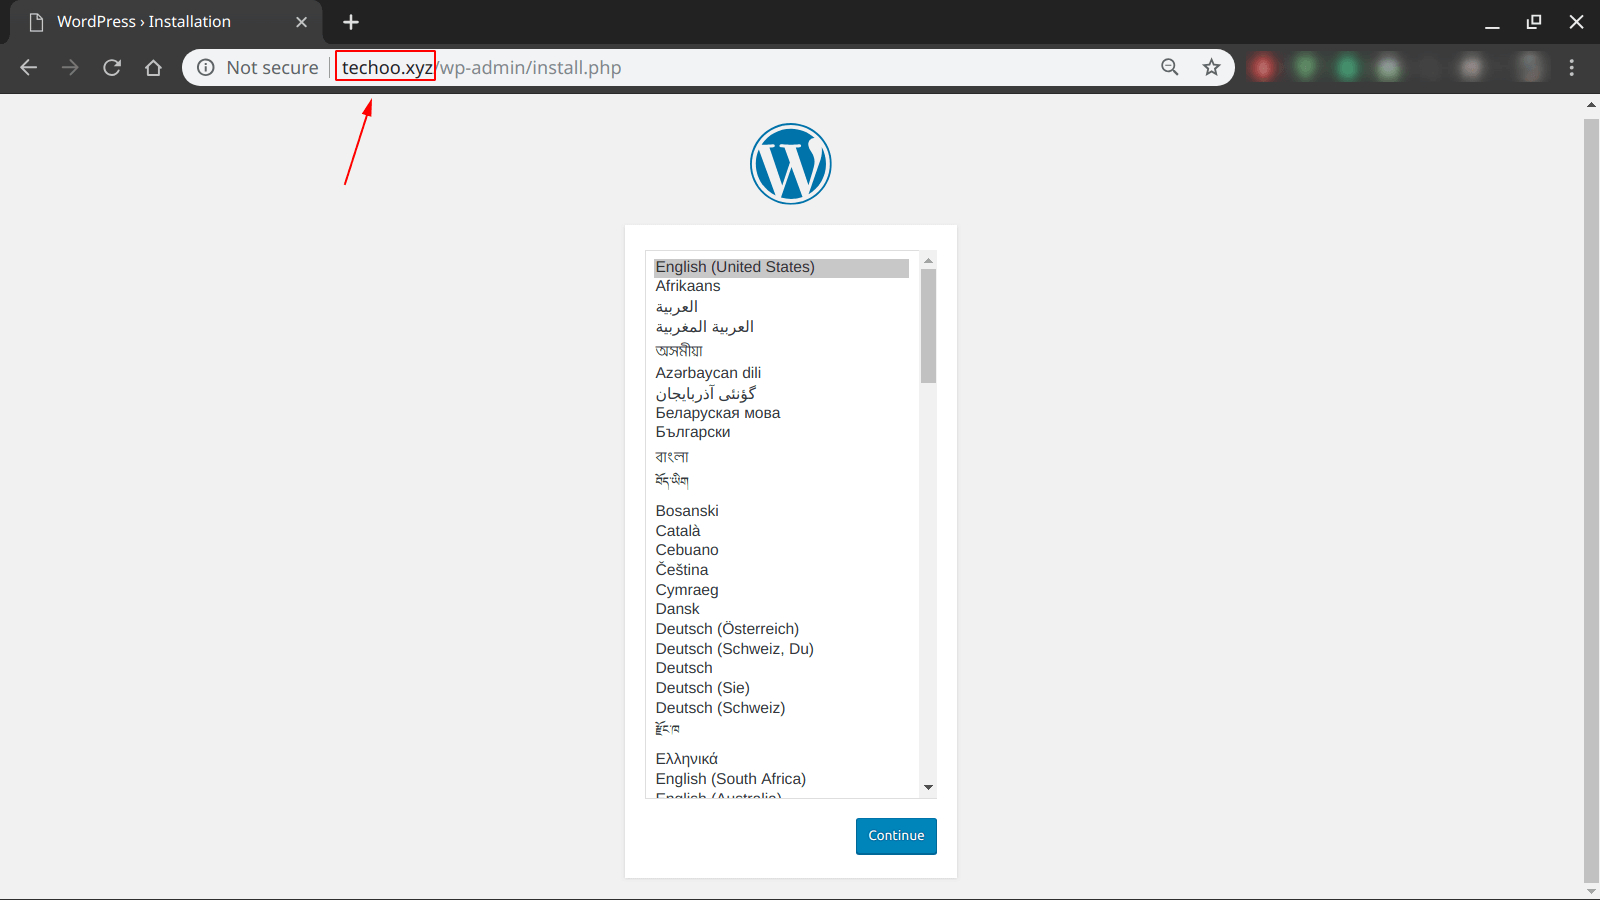 wordpress initial installation page